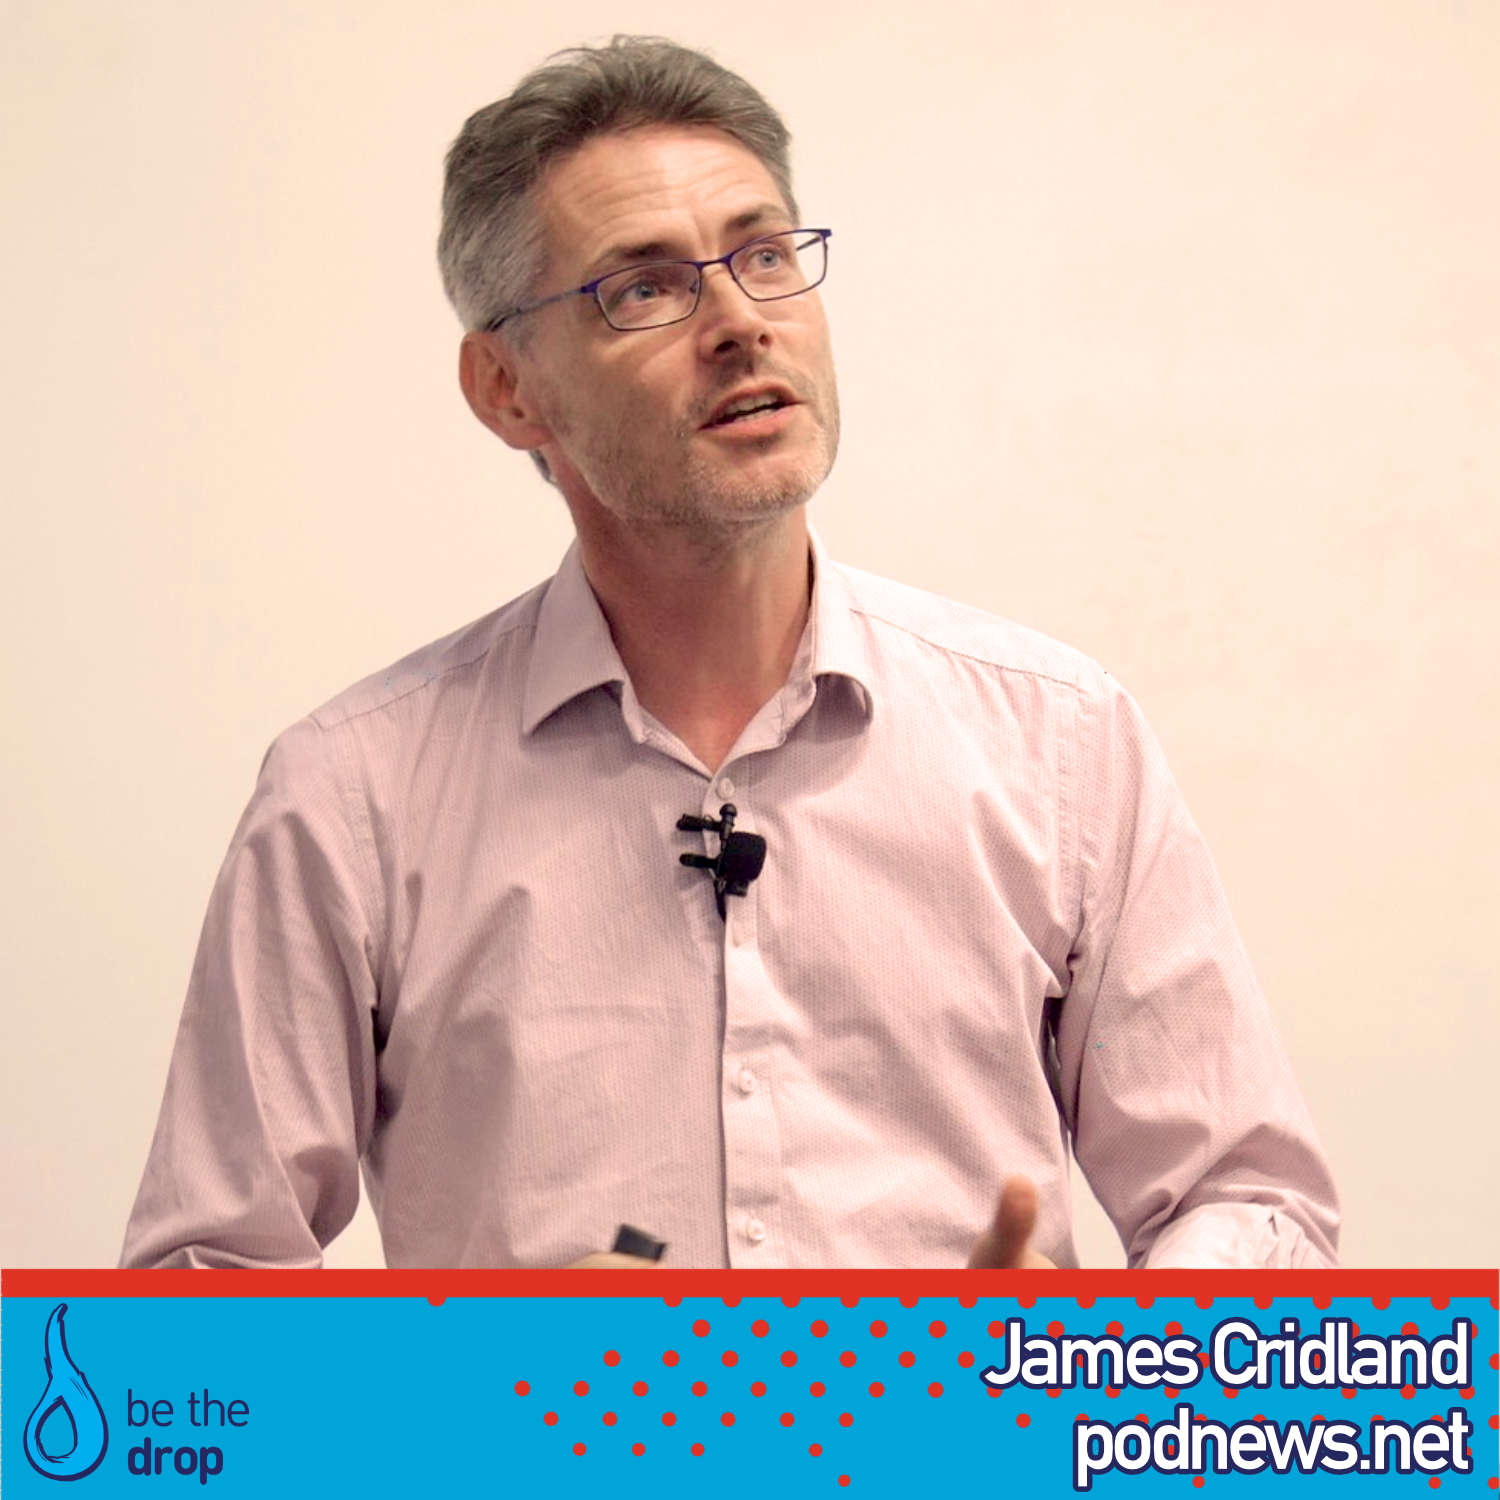 The latest 'Podnews' With James Cridland [Podcast]